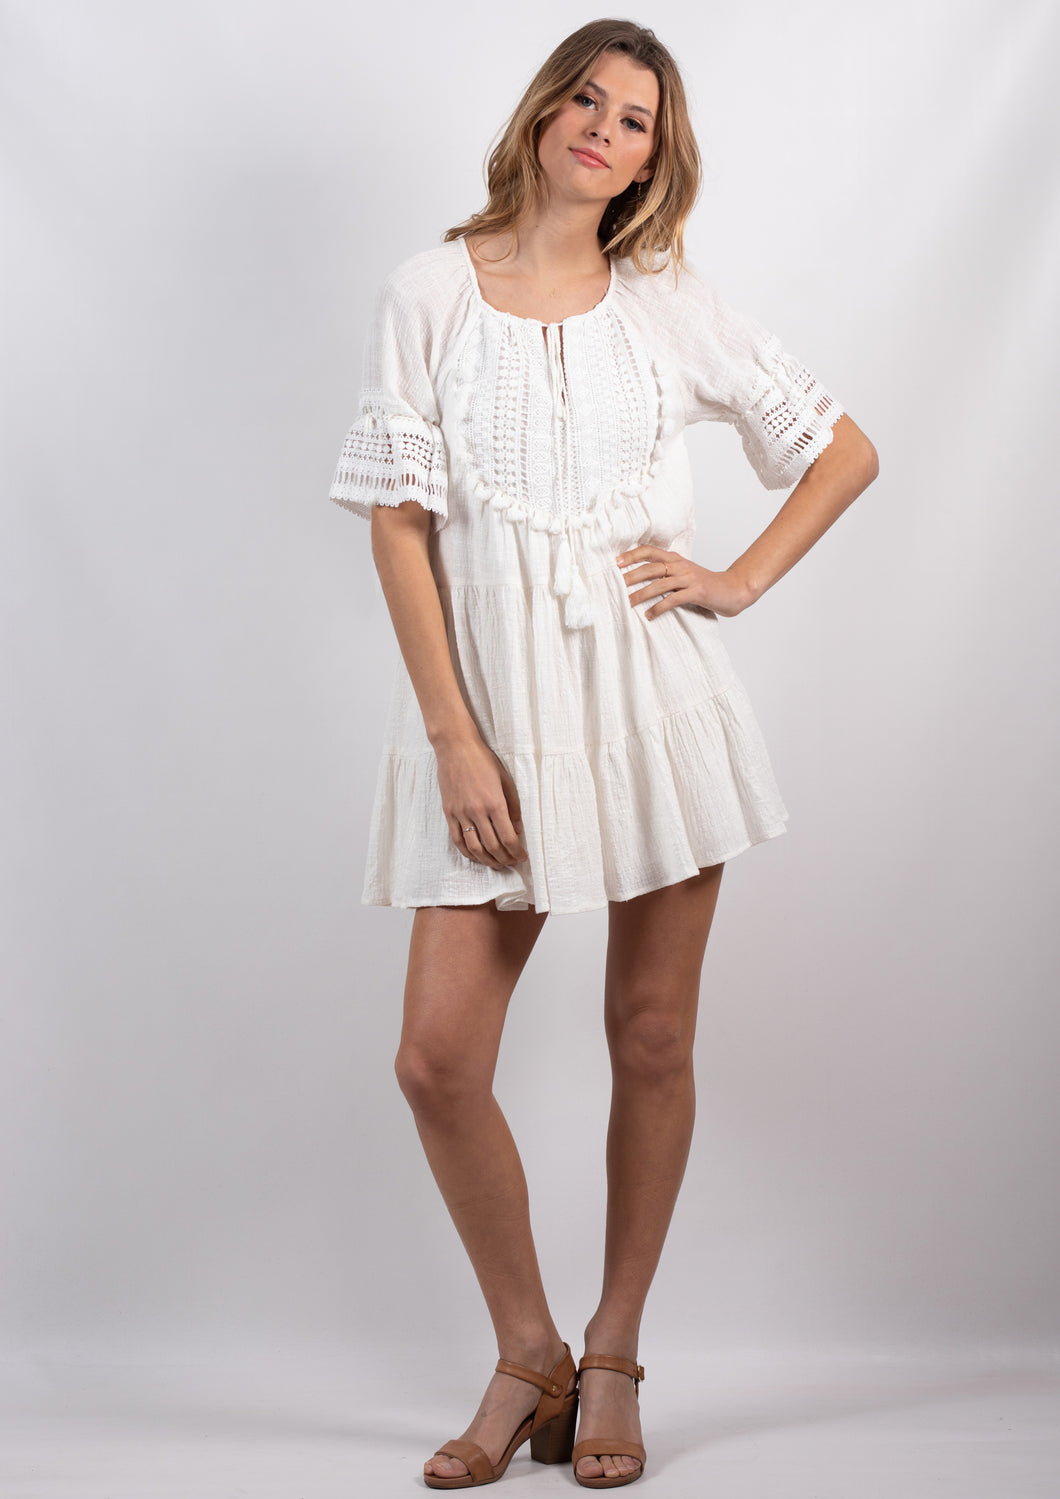 VY00219SS Boho Mini Dress (Pack) New Arrival